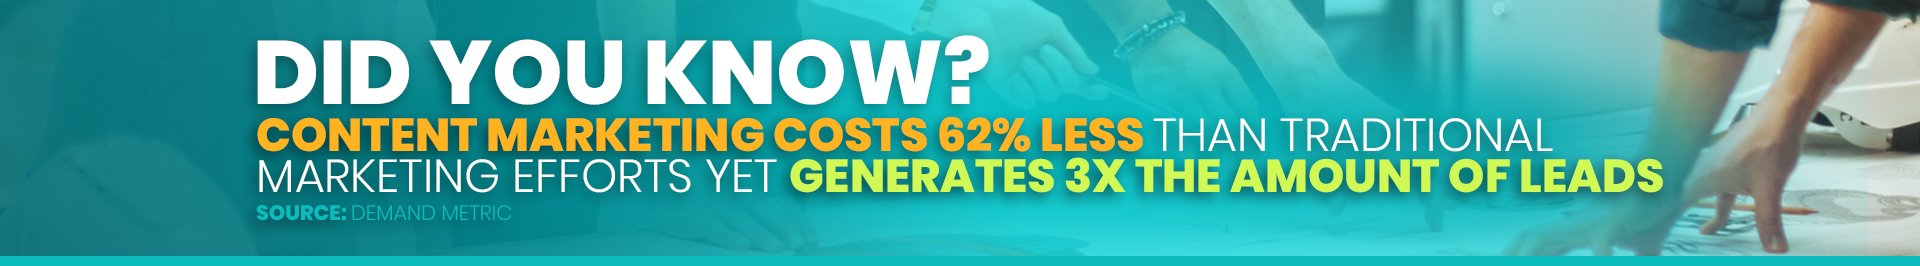 TU - Did you know - Content marketing 62